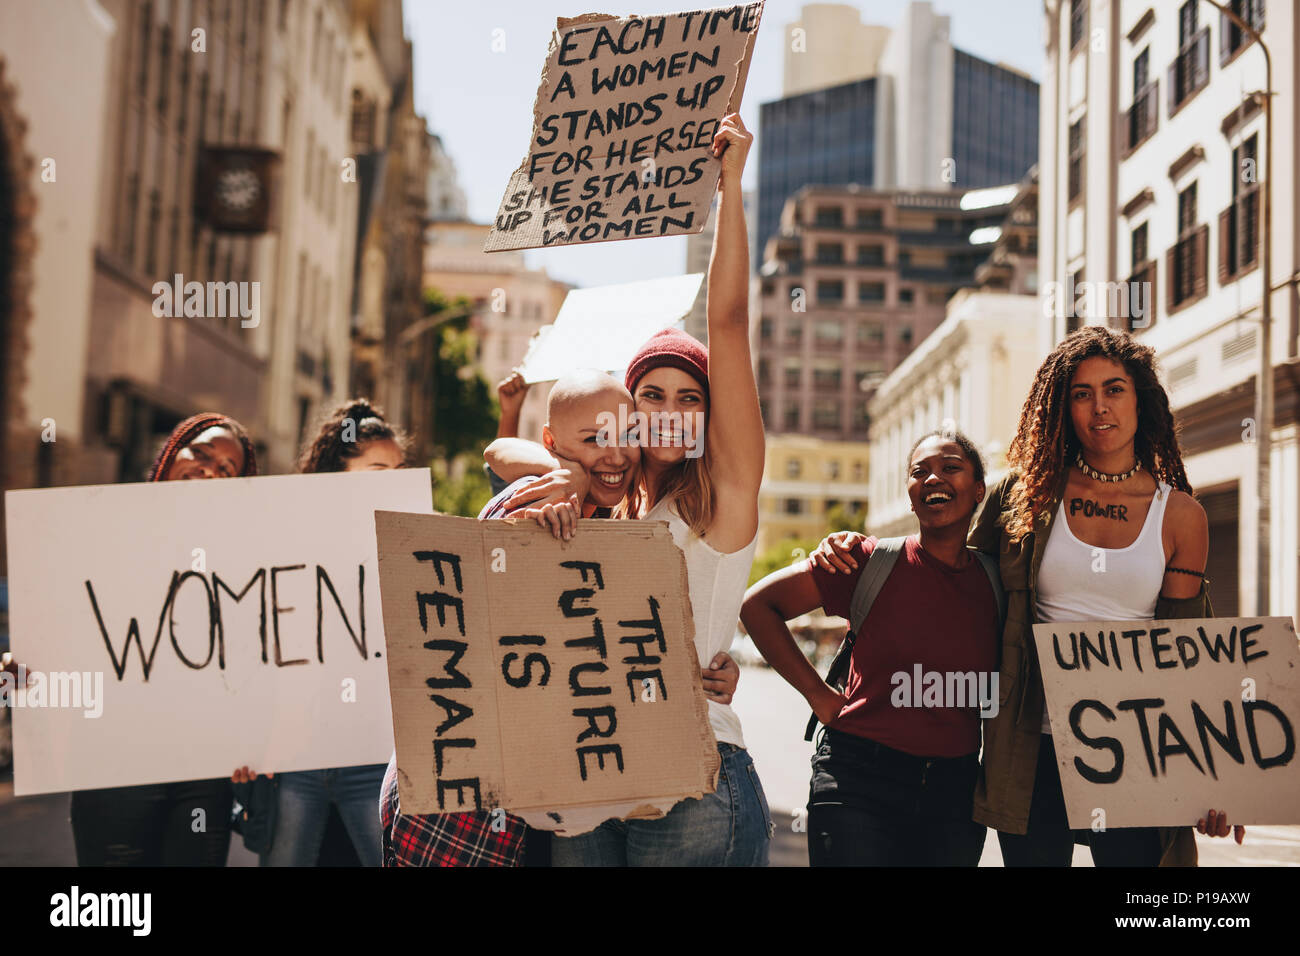 Crowd of protesters hold signs and rally on road. Group of women protesting for women empowerment and equality. - Stock Image